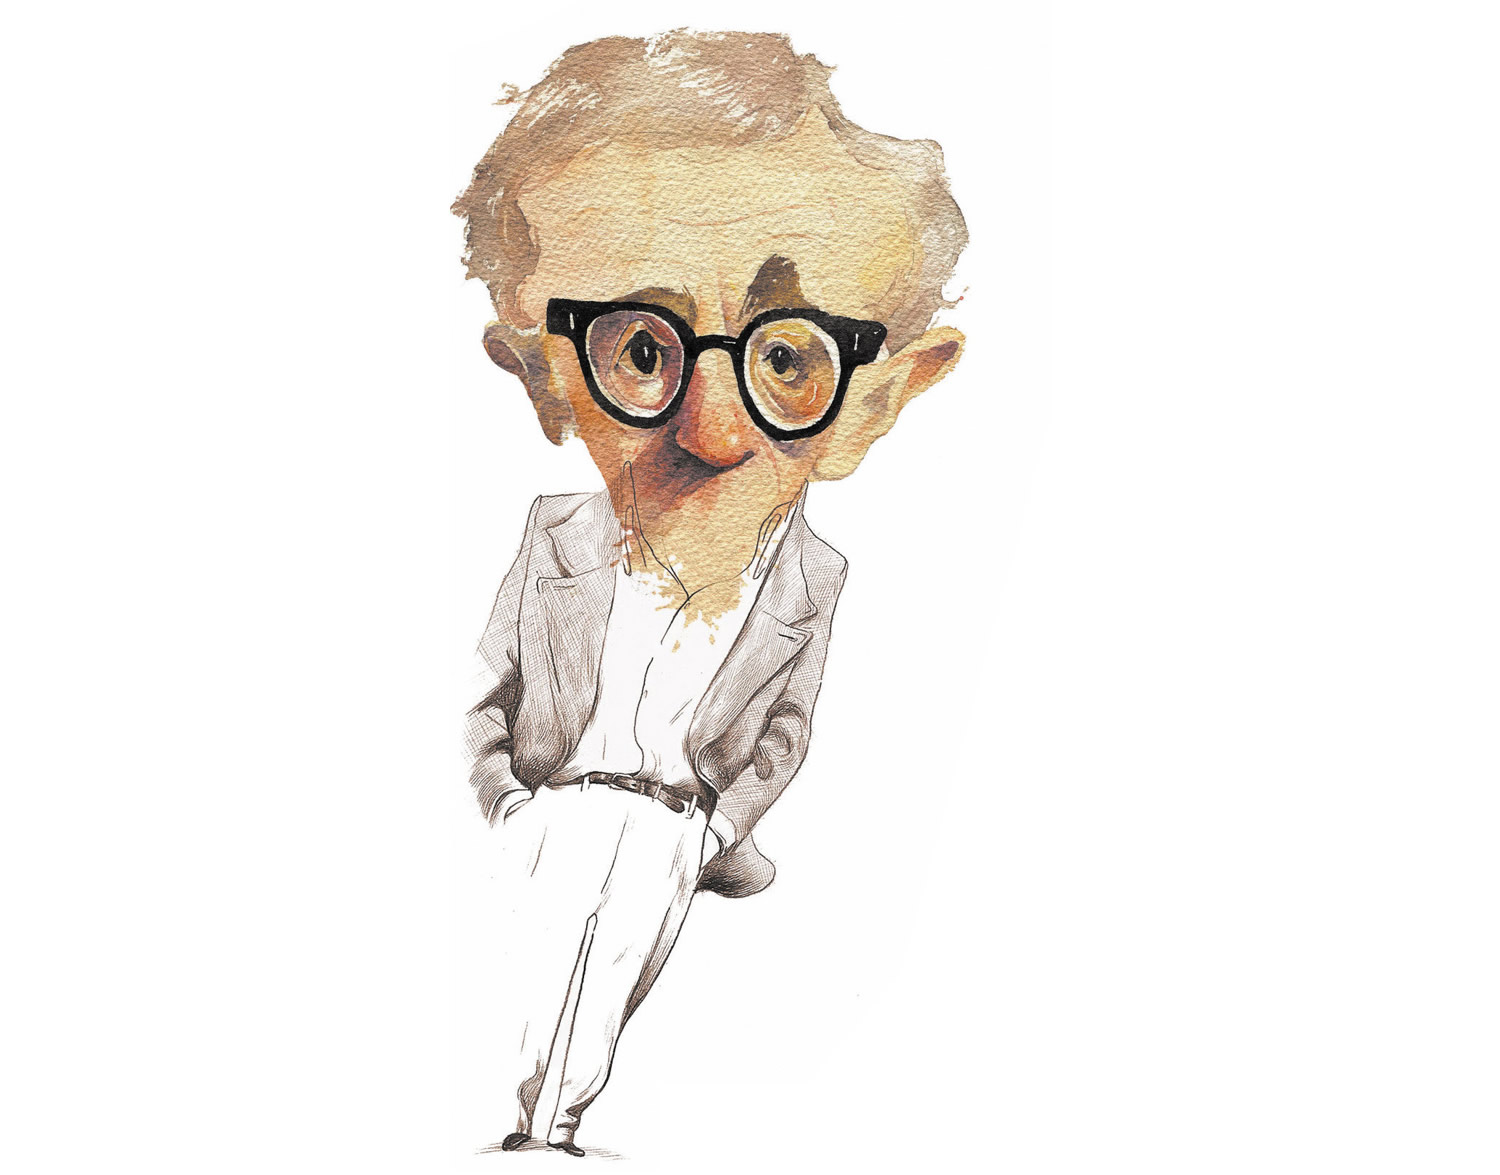 woody allen caricature, painting by kleber sales